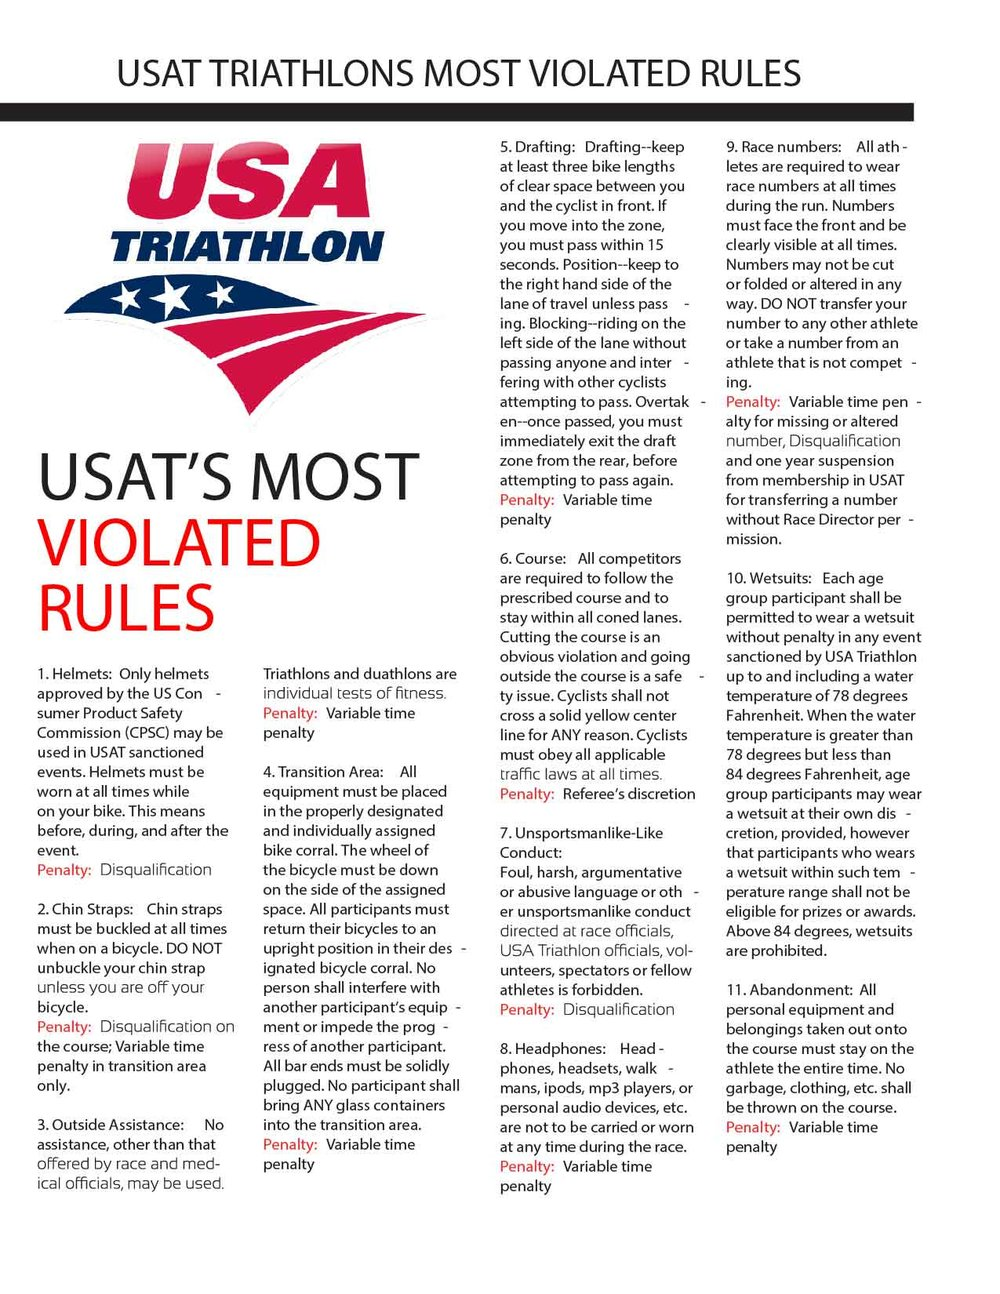 USAT Article - Most violated rules.jpg